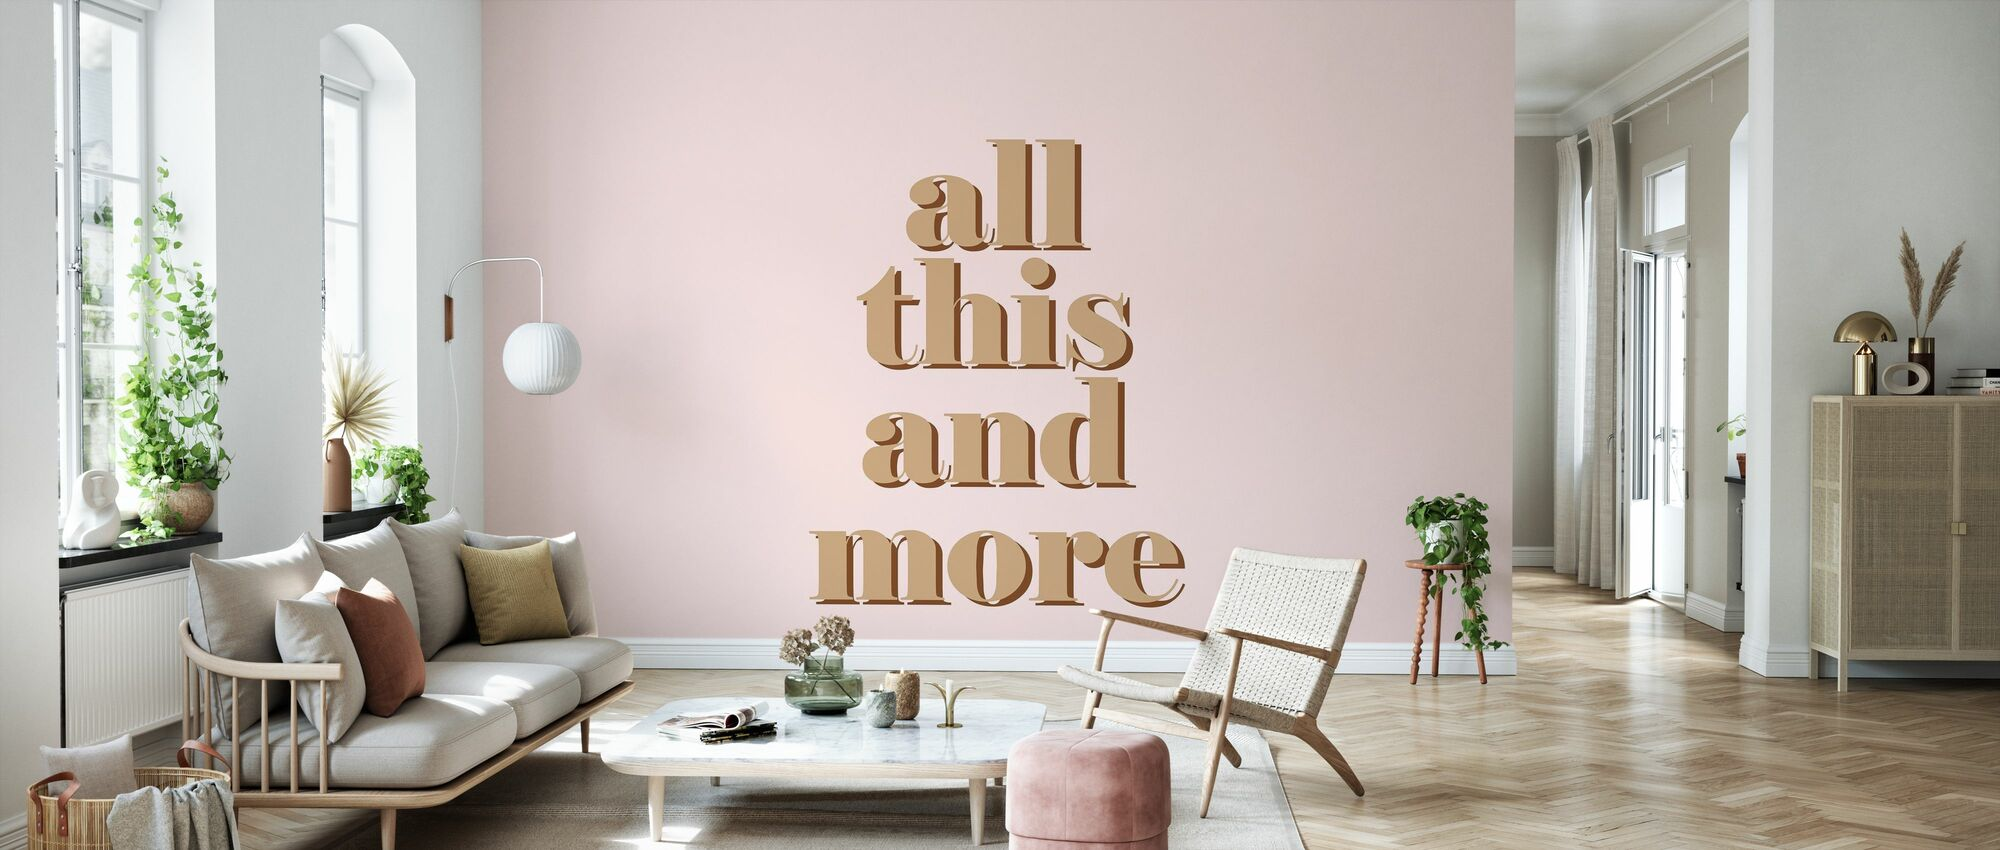 All this and More - Wallpaper - Living Room